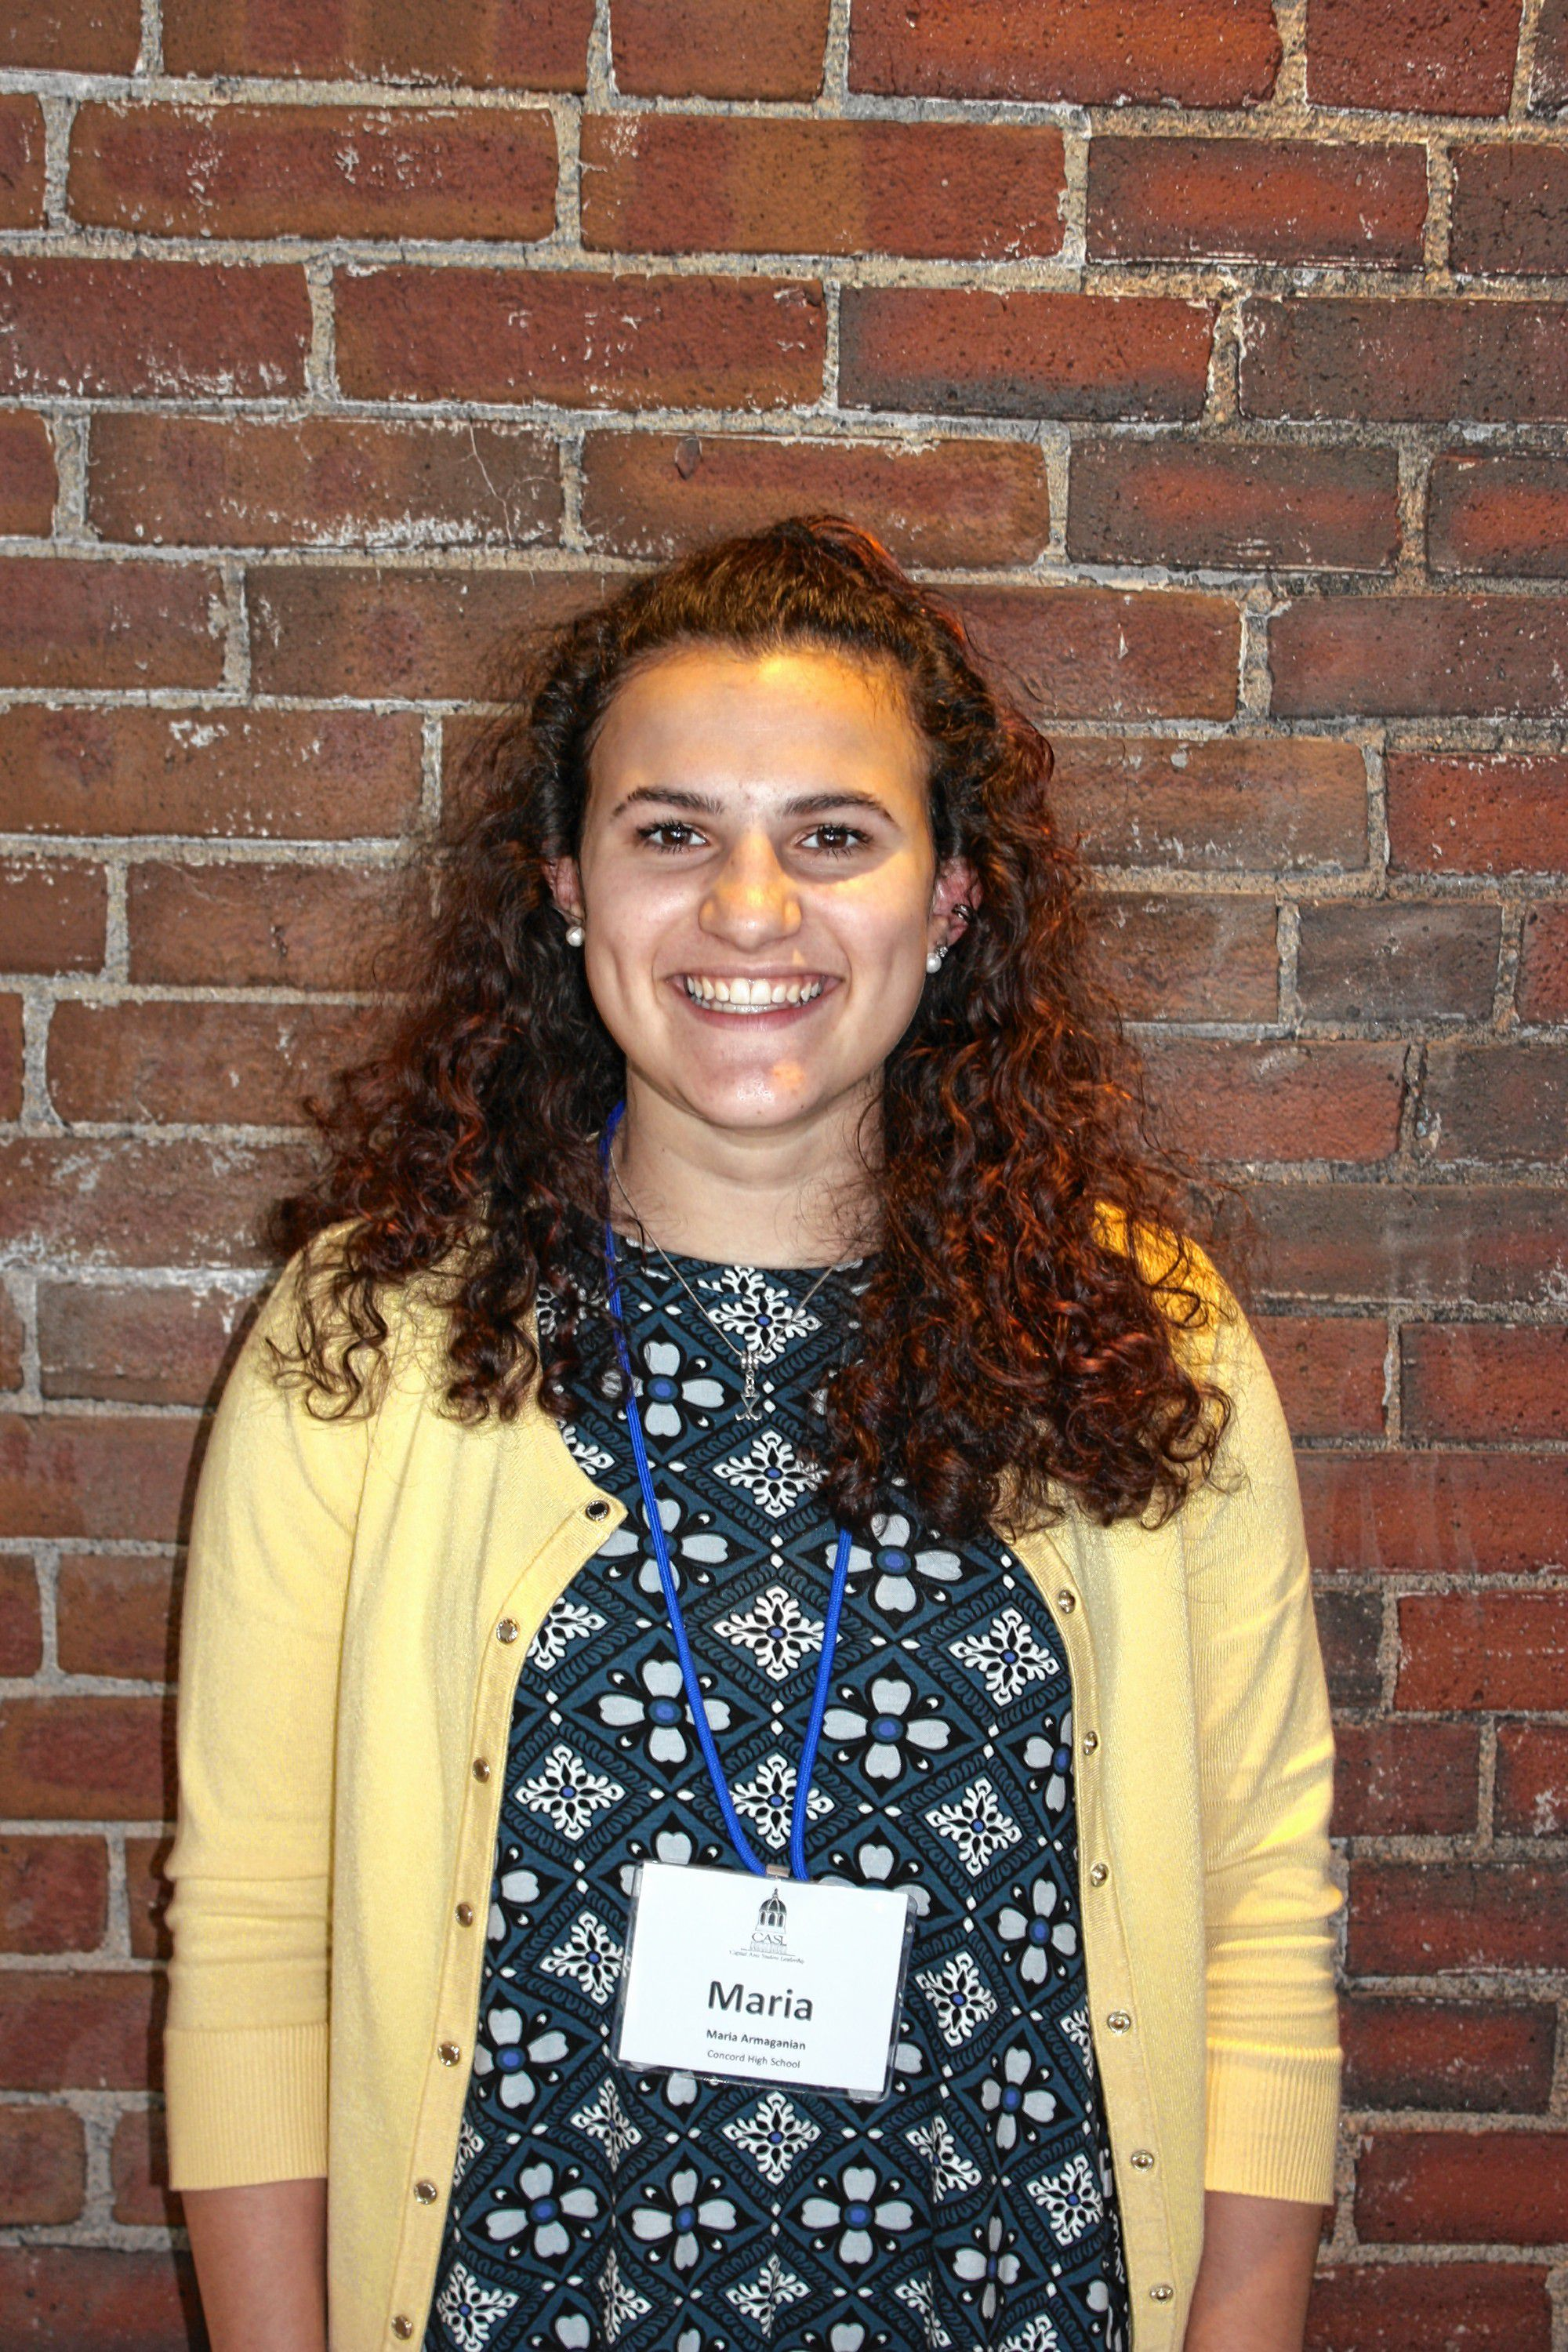 Maria Armaganian, Concord High School. One word that describes you: Inspiring. Two qualities of a good leader: Getting her point across (well-spoken), confidence. If you could spend a day with one person, who would it be? Justin Bieber.JON BODELL / Insider staff